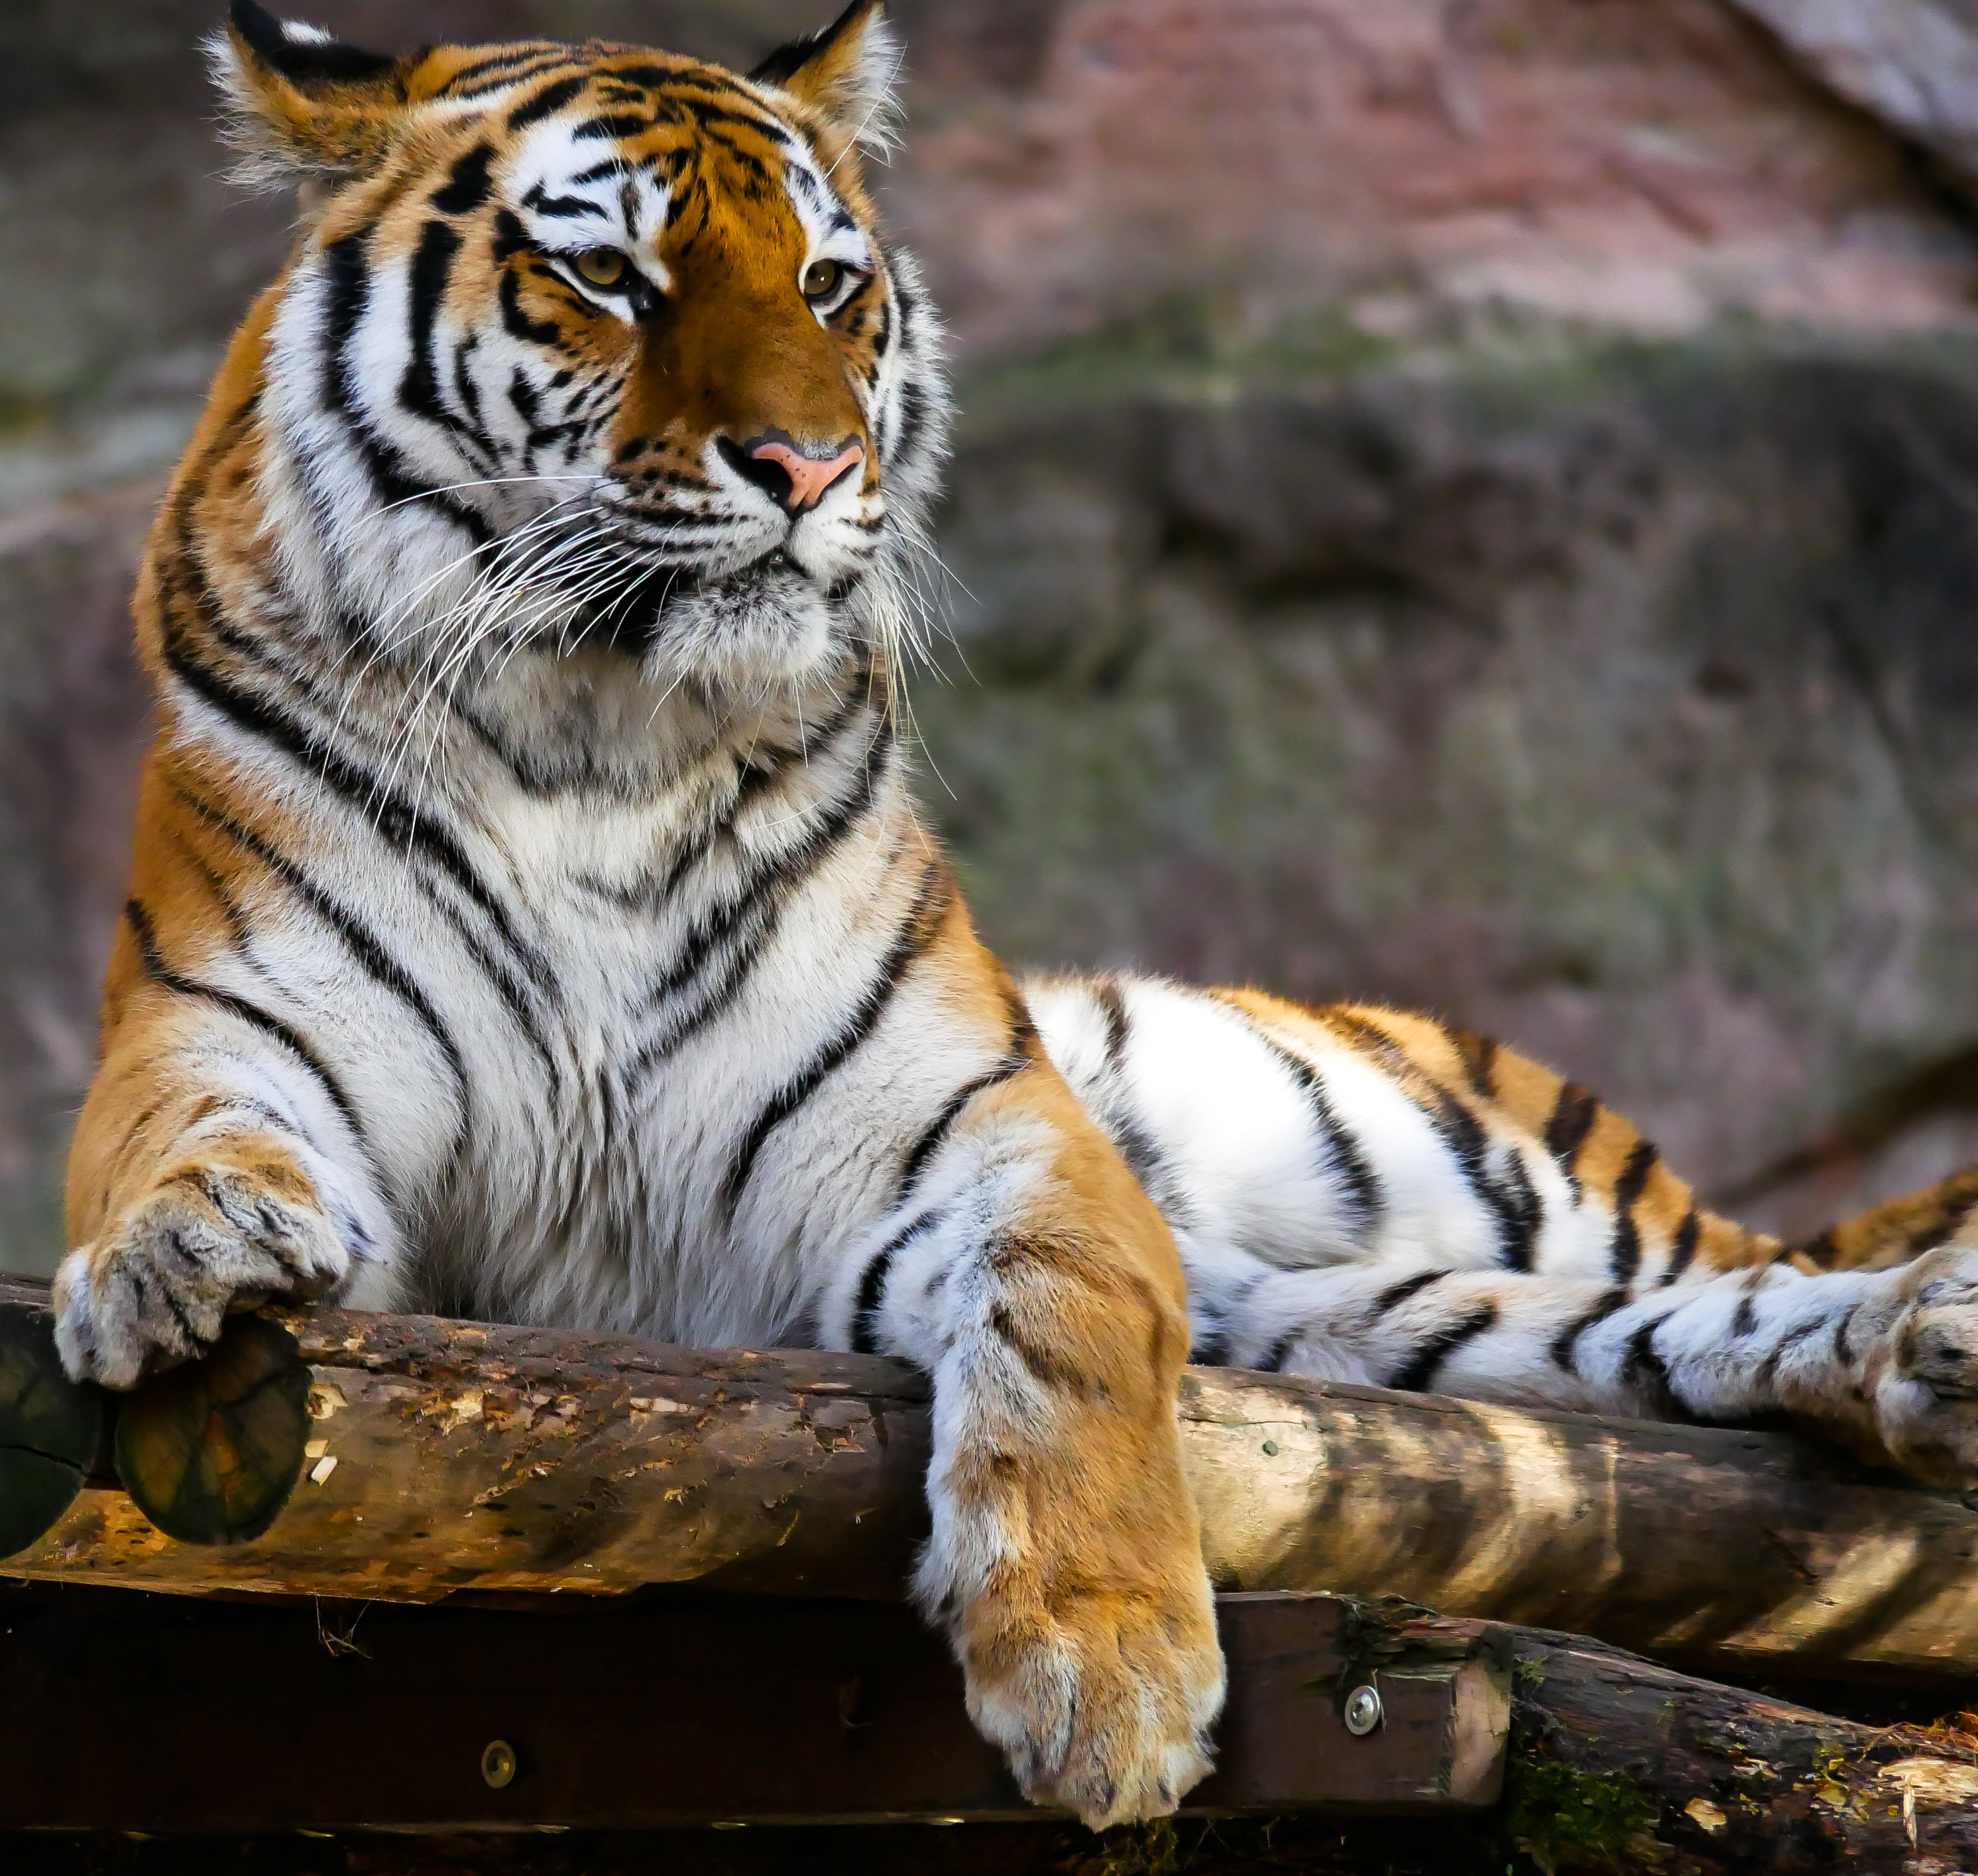 Jungle Wallpaper With Animals Tiger Sitting On Brown Logs Closeup Photography 183 Free